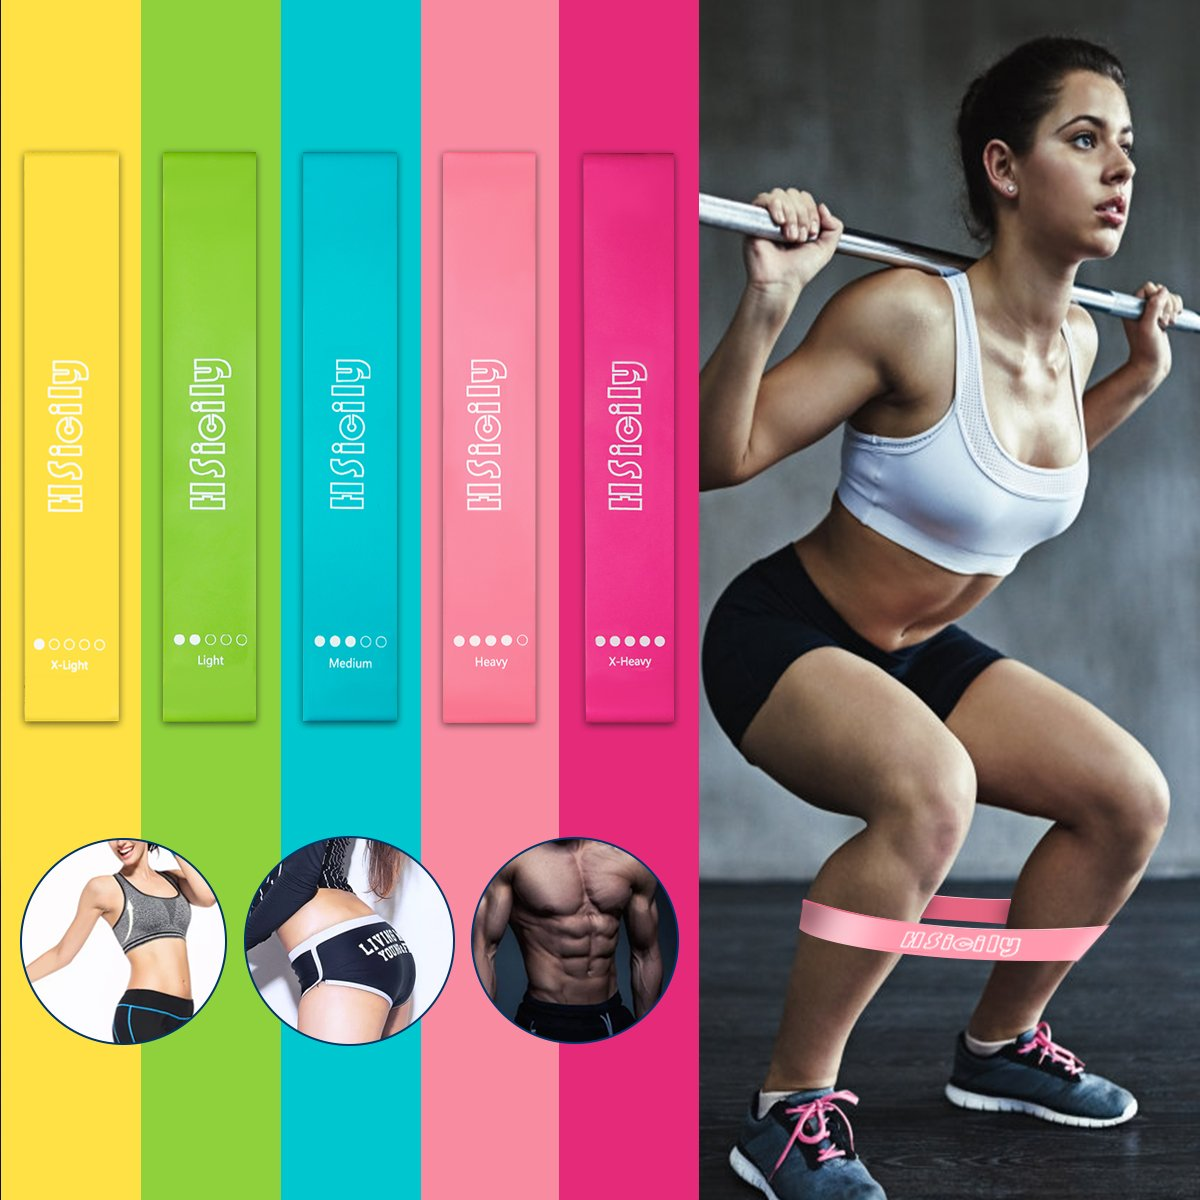 HSicily Resistance Loop Exercise Bands for Home Workout, Pilates, Yoga, Rehab, Physical Therapy with Carrying Bag, Set of 5 Different Levels, 12\